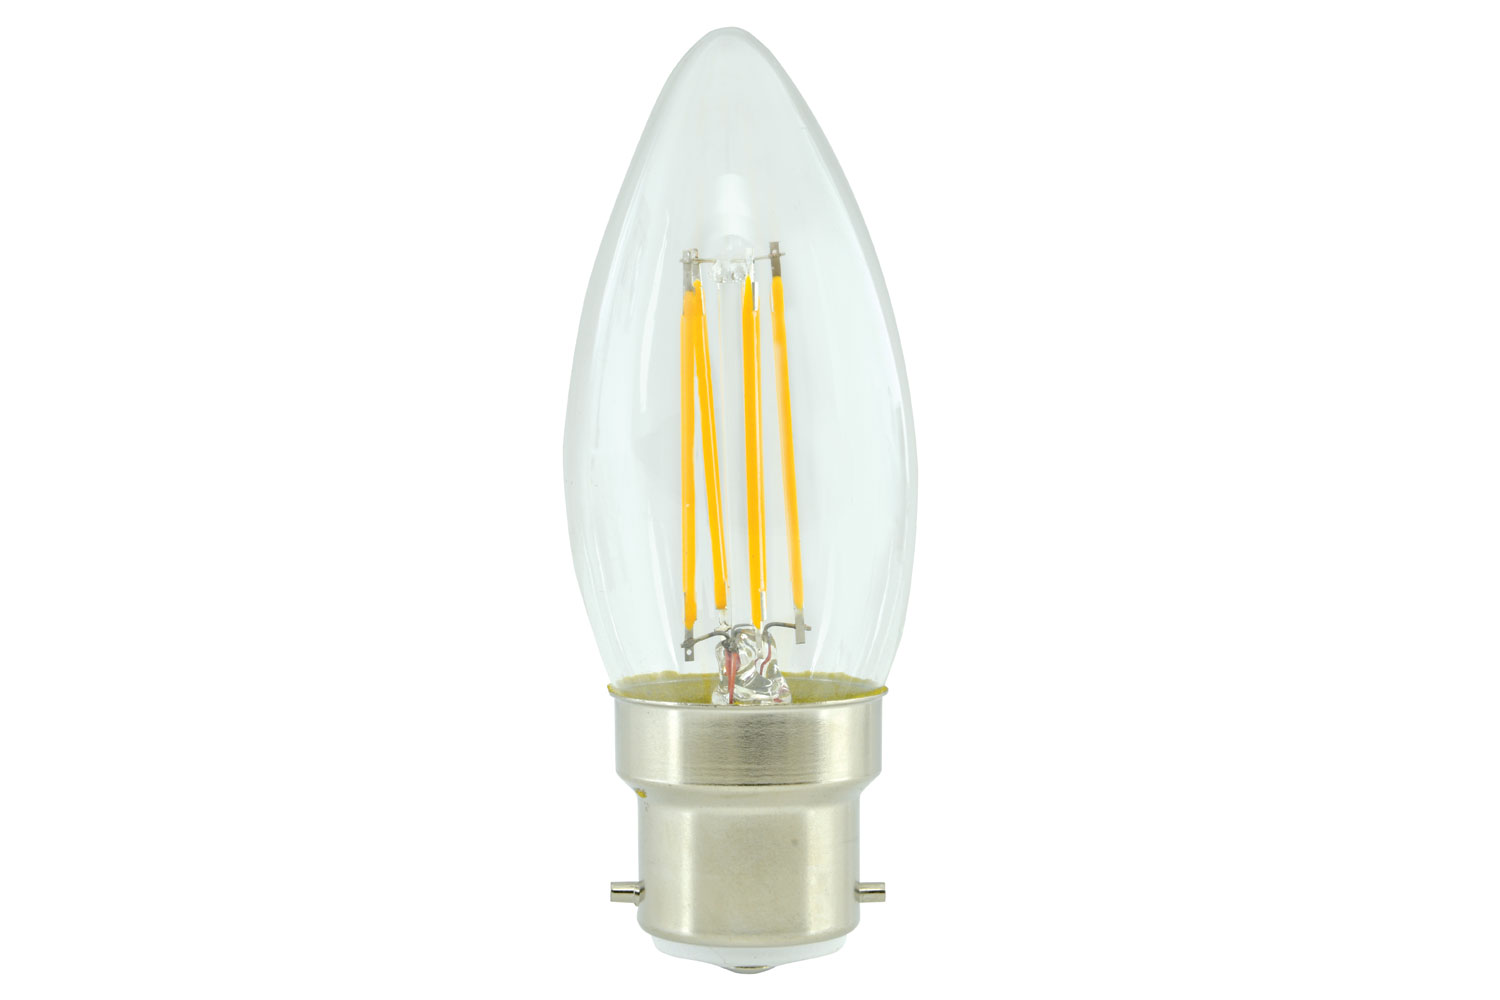 lyyt Candle Filament Lamp 4W LED B22 WW